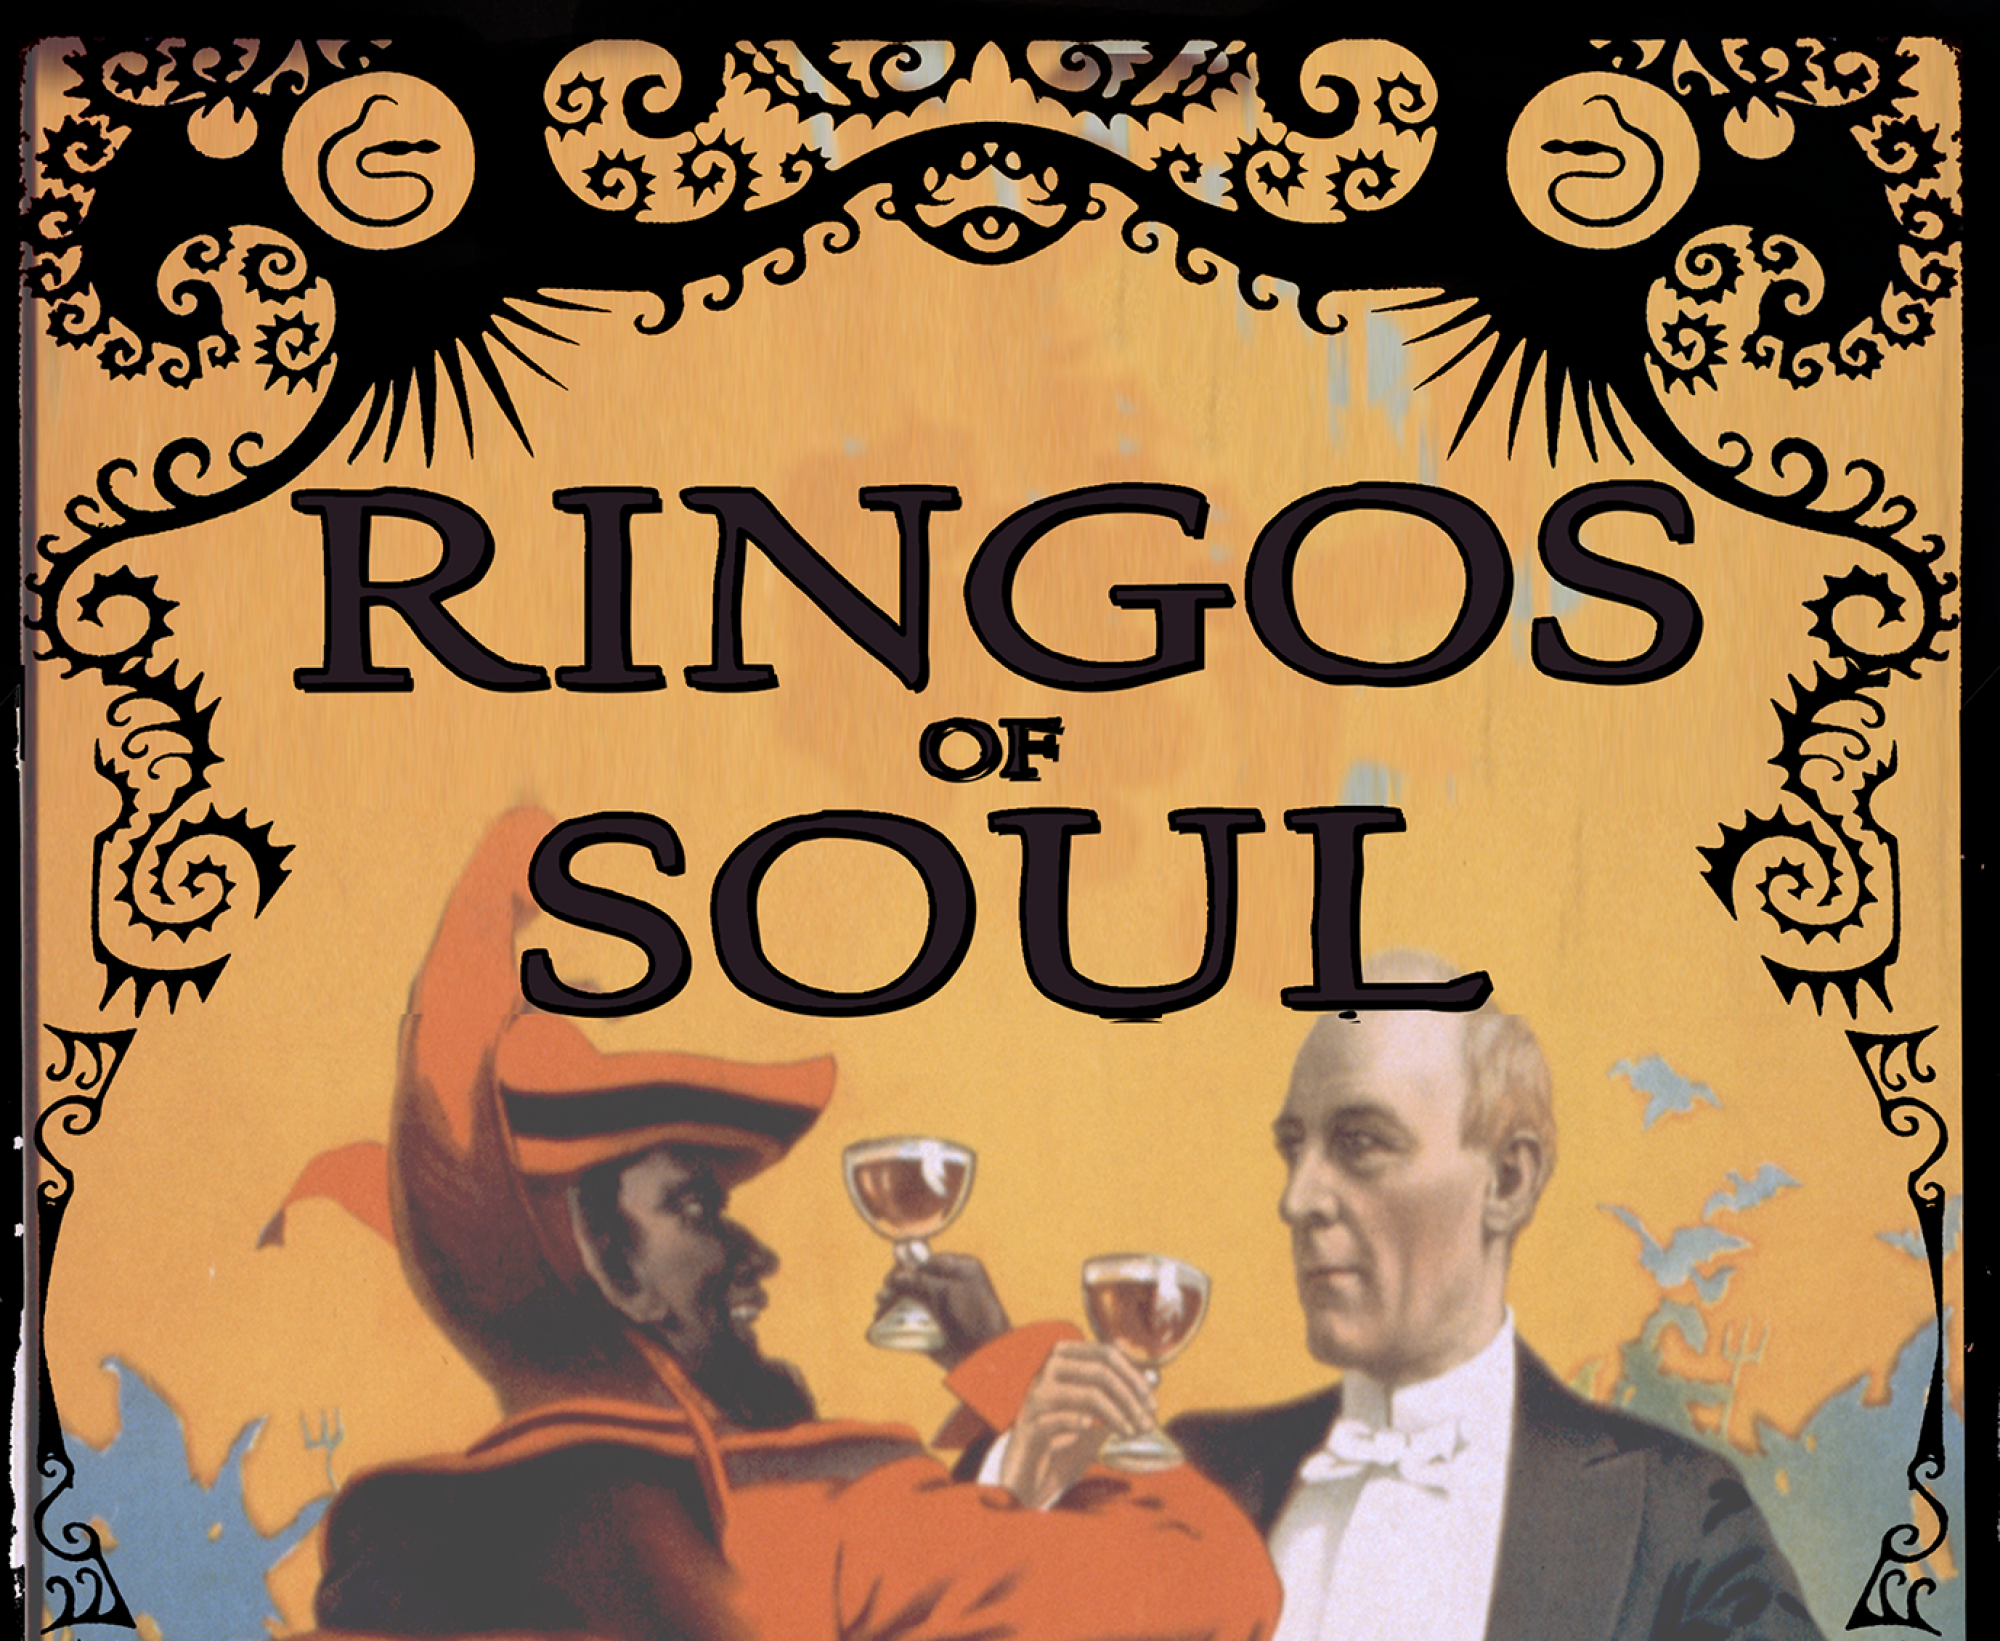 The Ringos of Soul